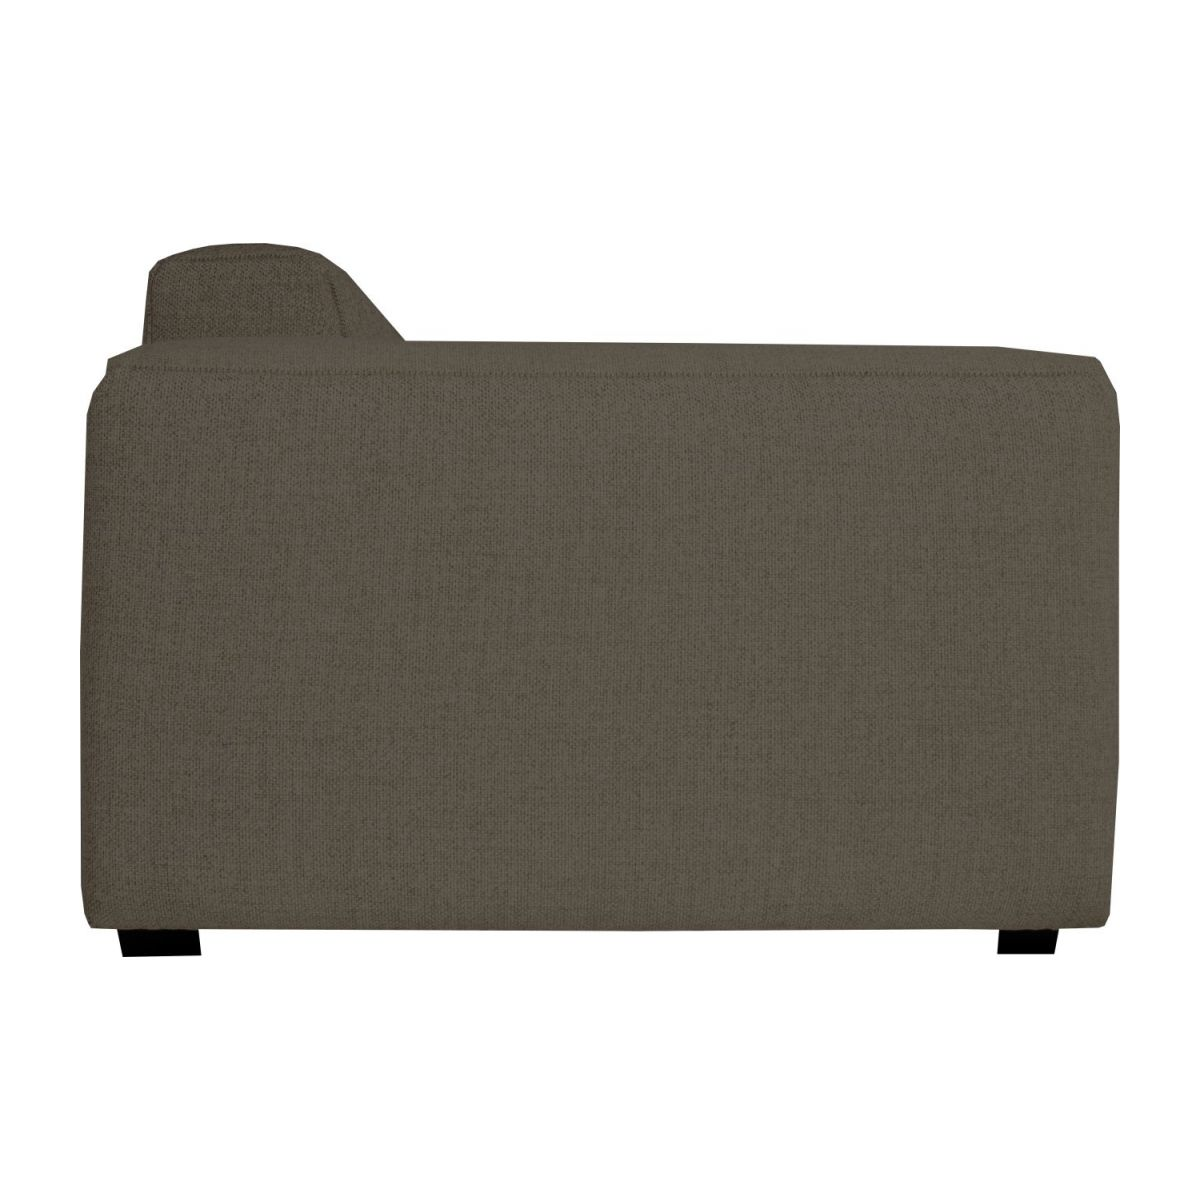 2 seater sofa in Lecce fabric, muscat n°3